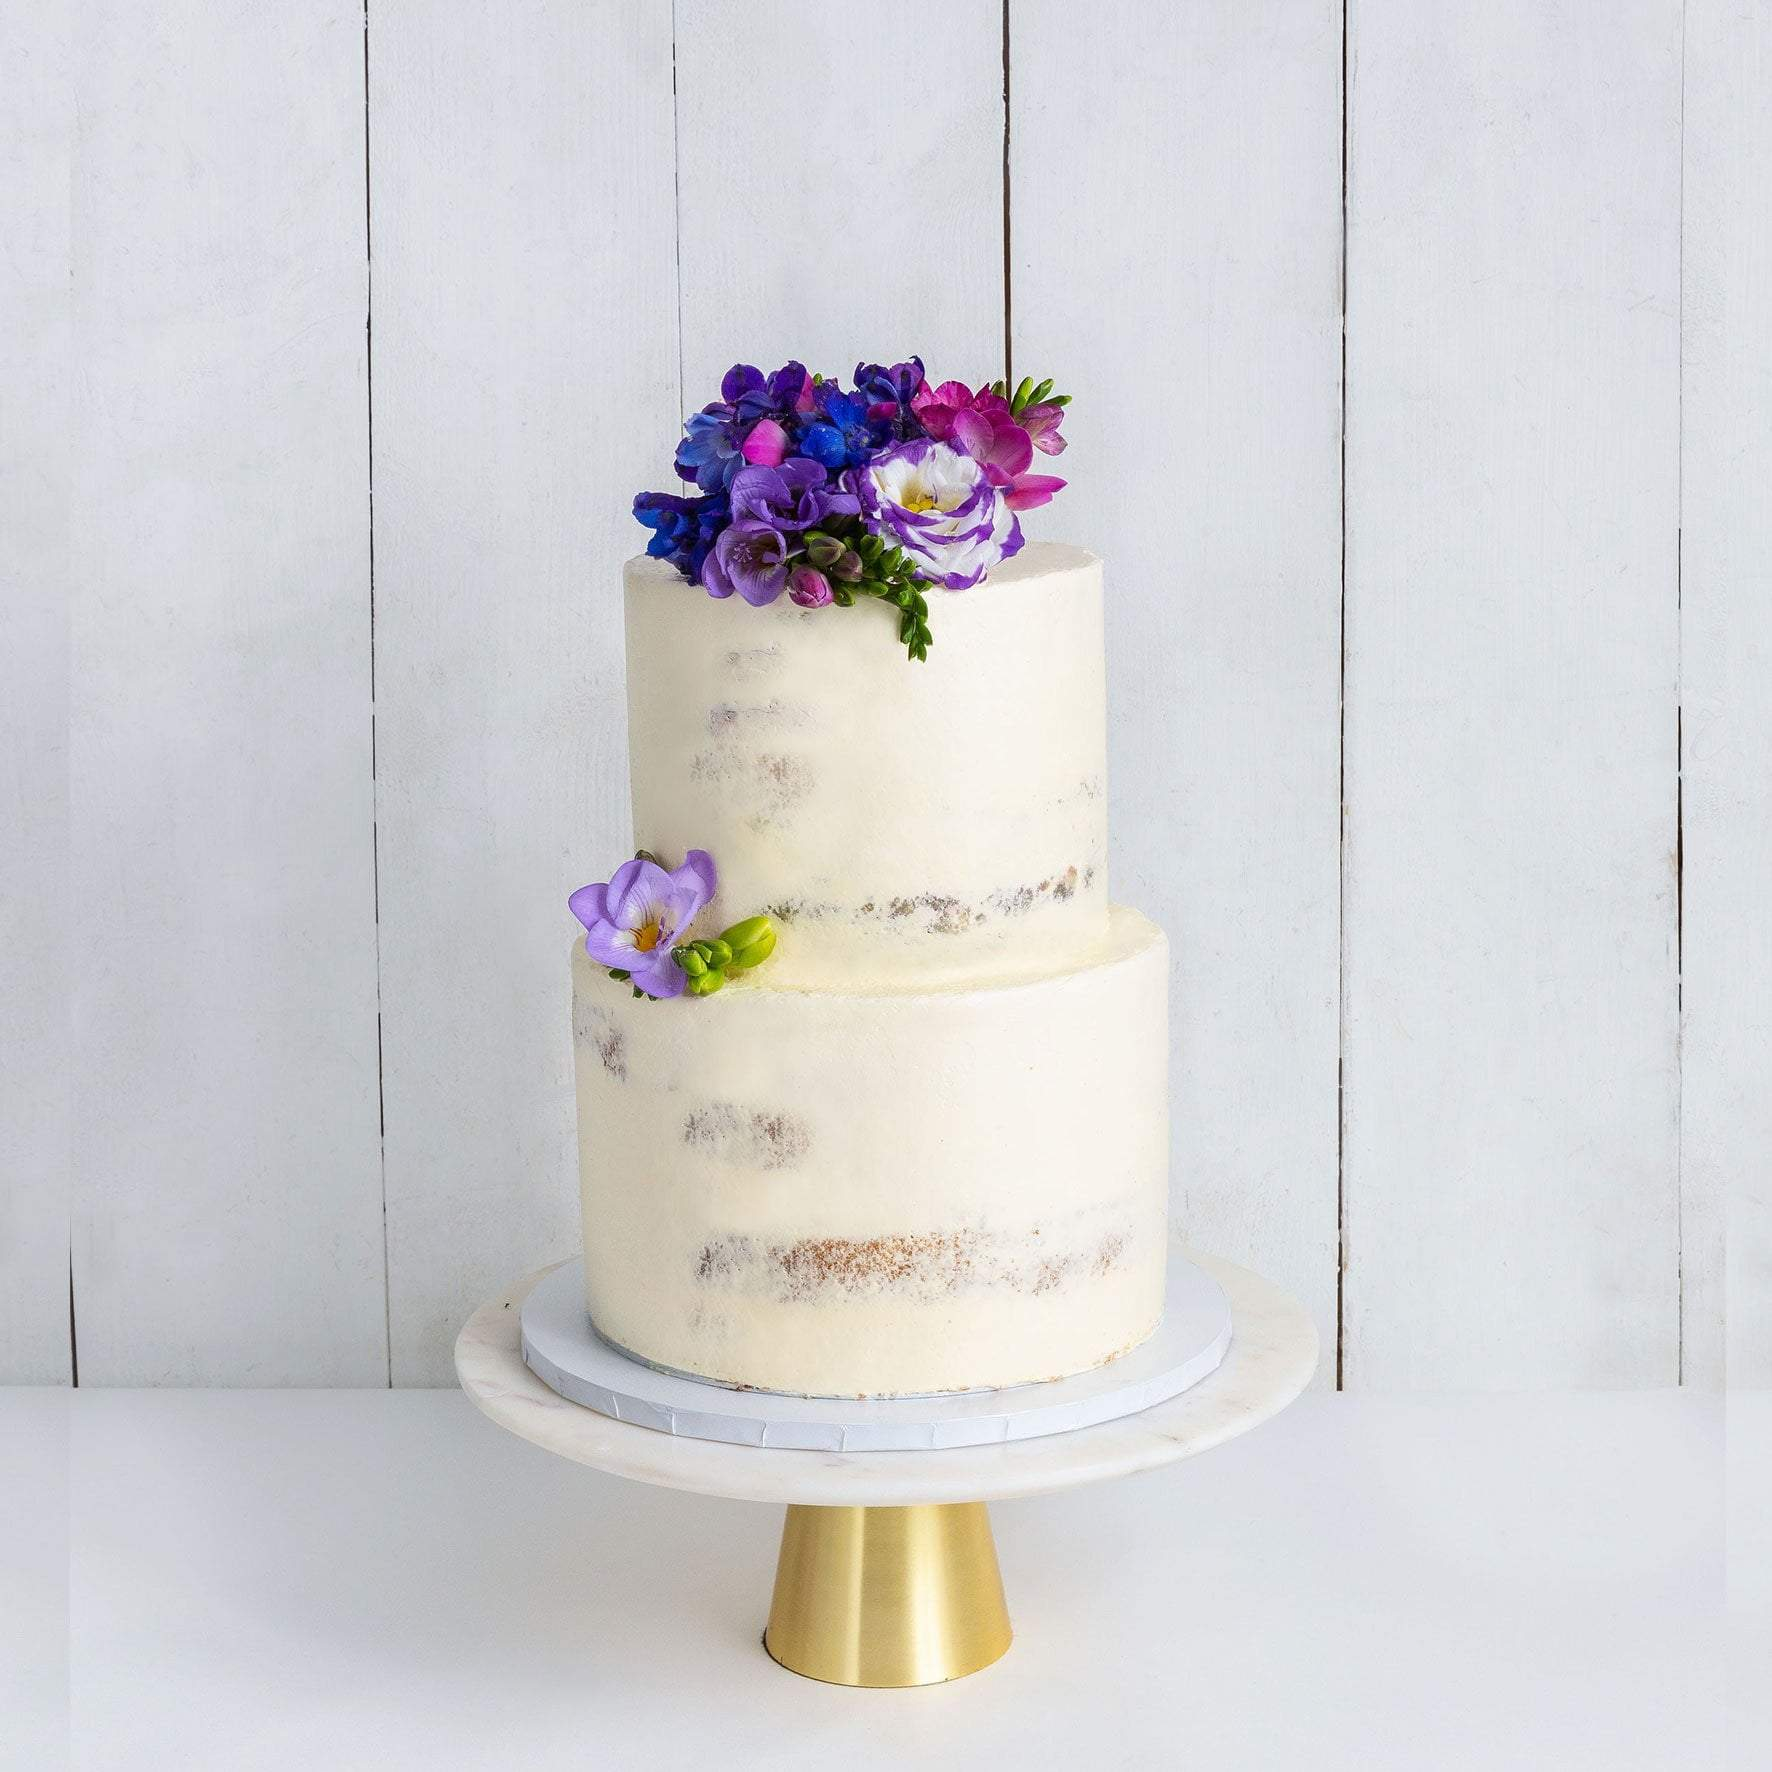 2 Tier Wedding Cakes London Delivery Cutter Squidge